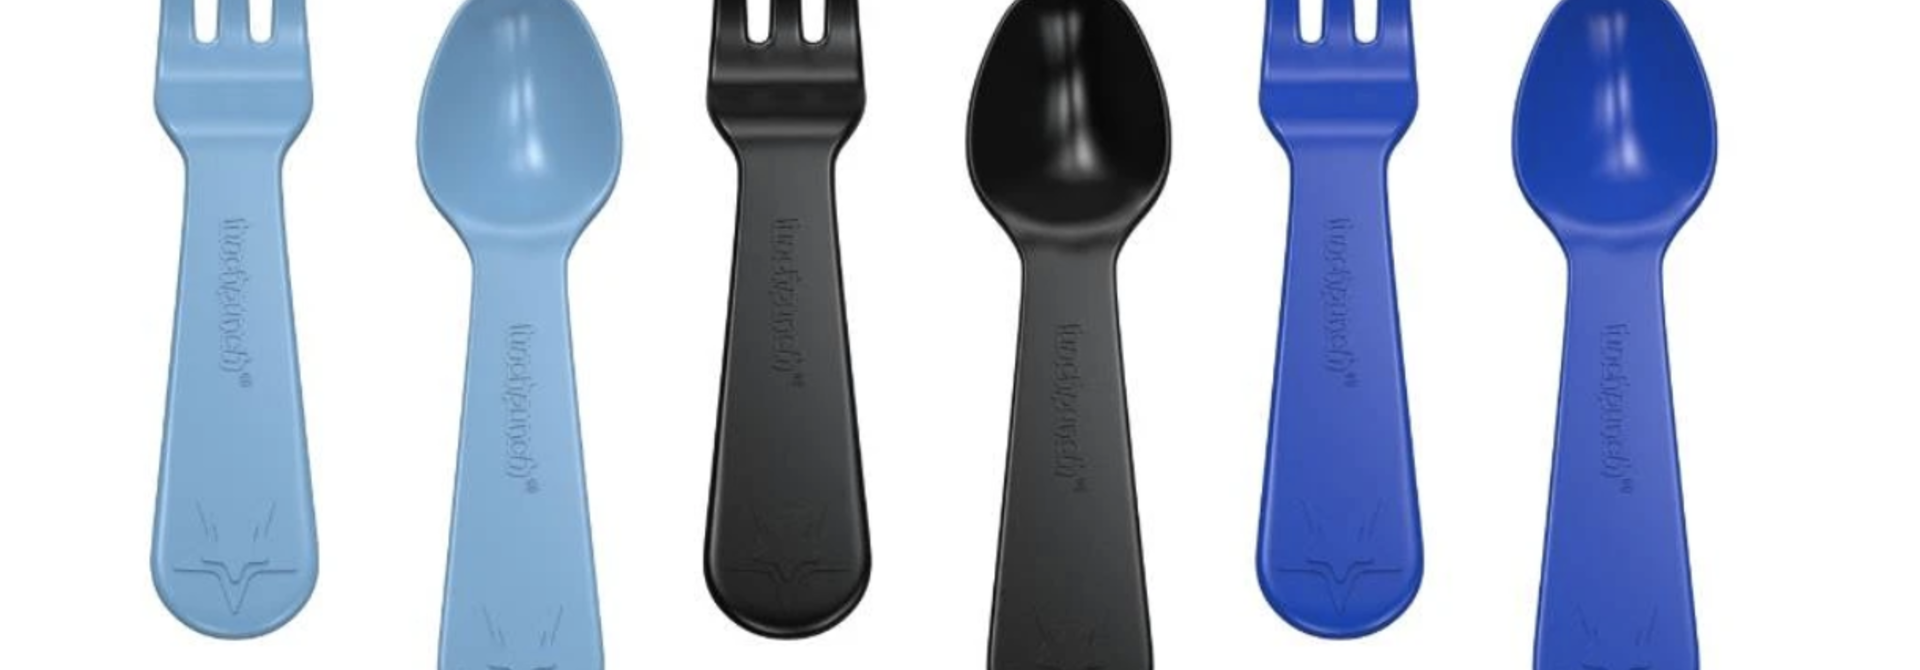 Lunch Punch Fork and Spoon - Blue